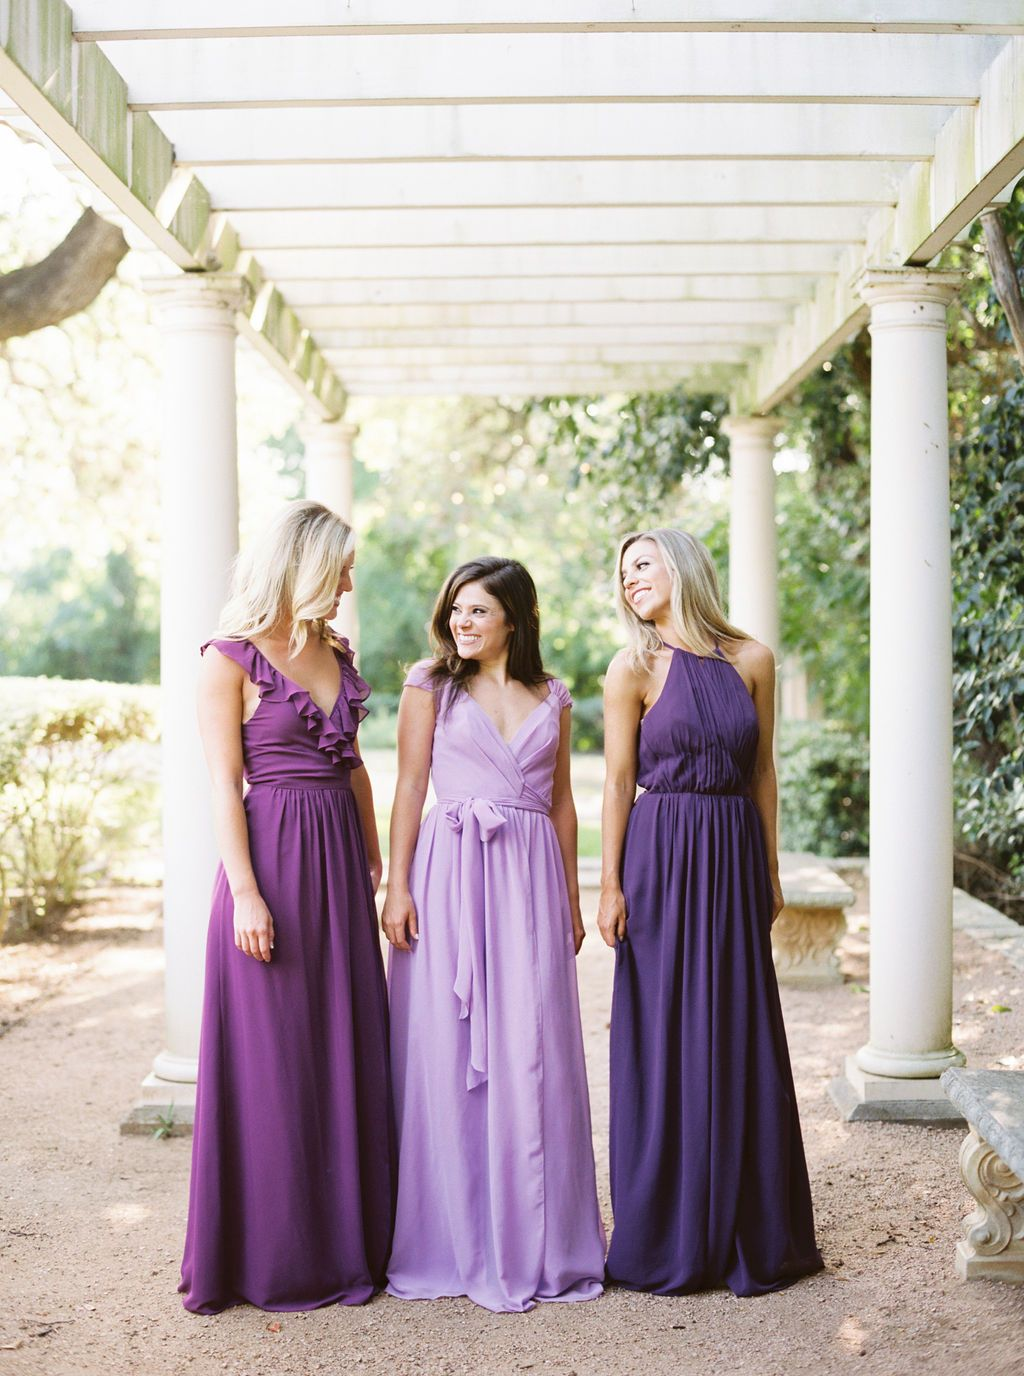 Mix And Match Revelry Bridesmaid Dresses And Separates Revelry Has A Wide Selection O Unique Bridesmaid Dresses Bridesmaid Dresses Separates Bridesmaid Dresses [ 1376 x 1024 Pixel ]